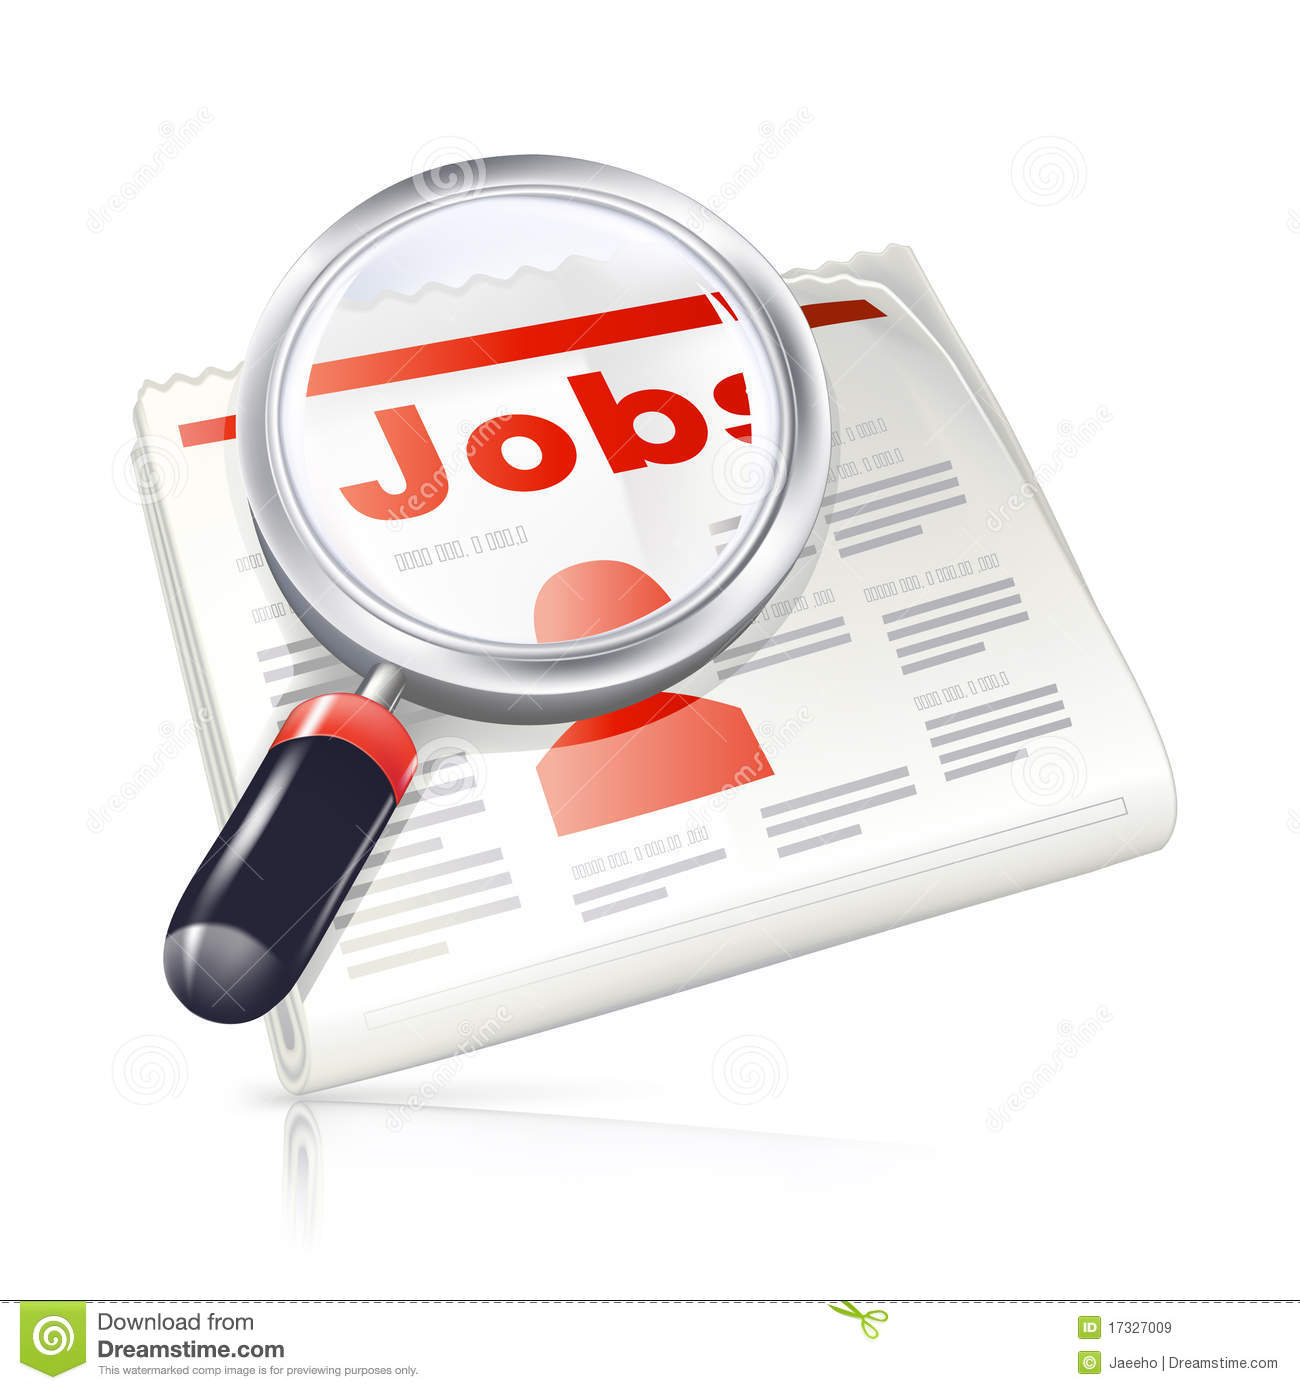 Job, Icon Royalty Free Stock Images - Image: 17327009